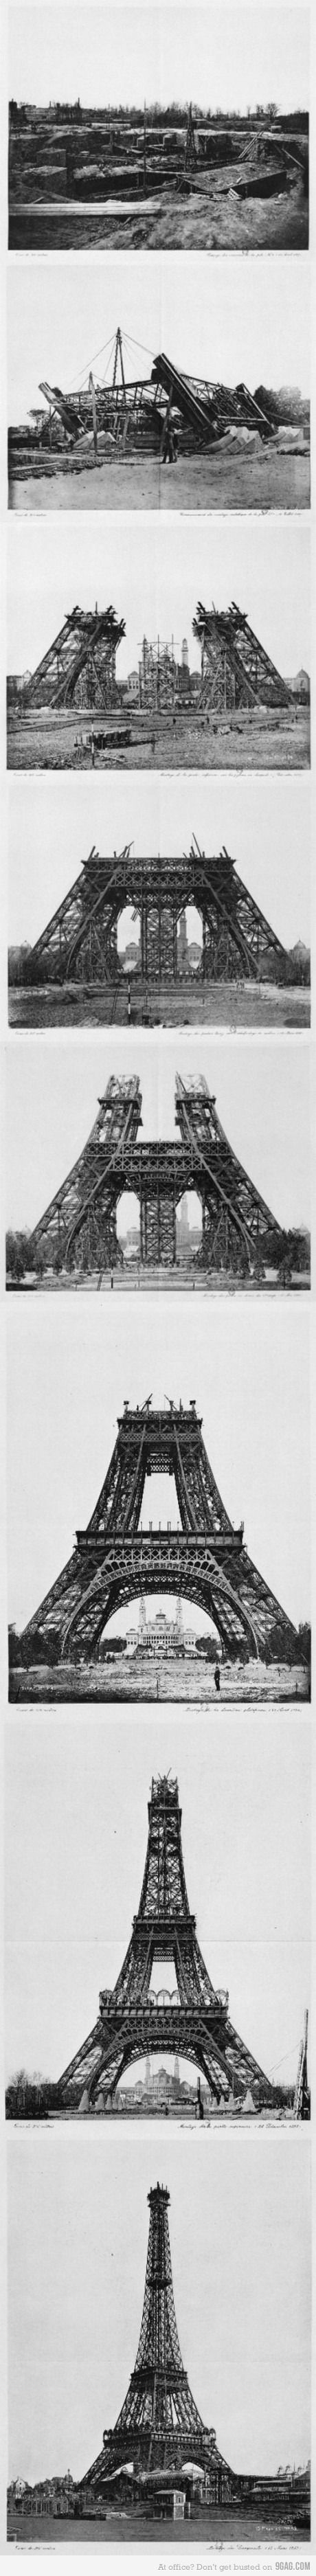 Building the tower